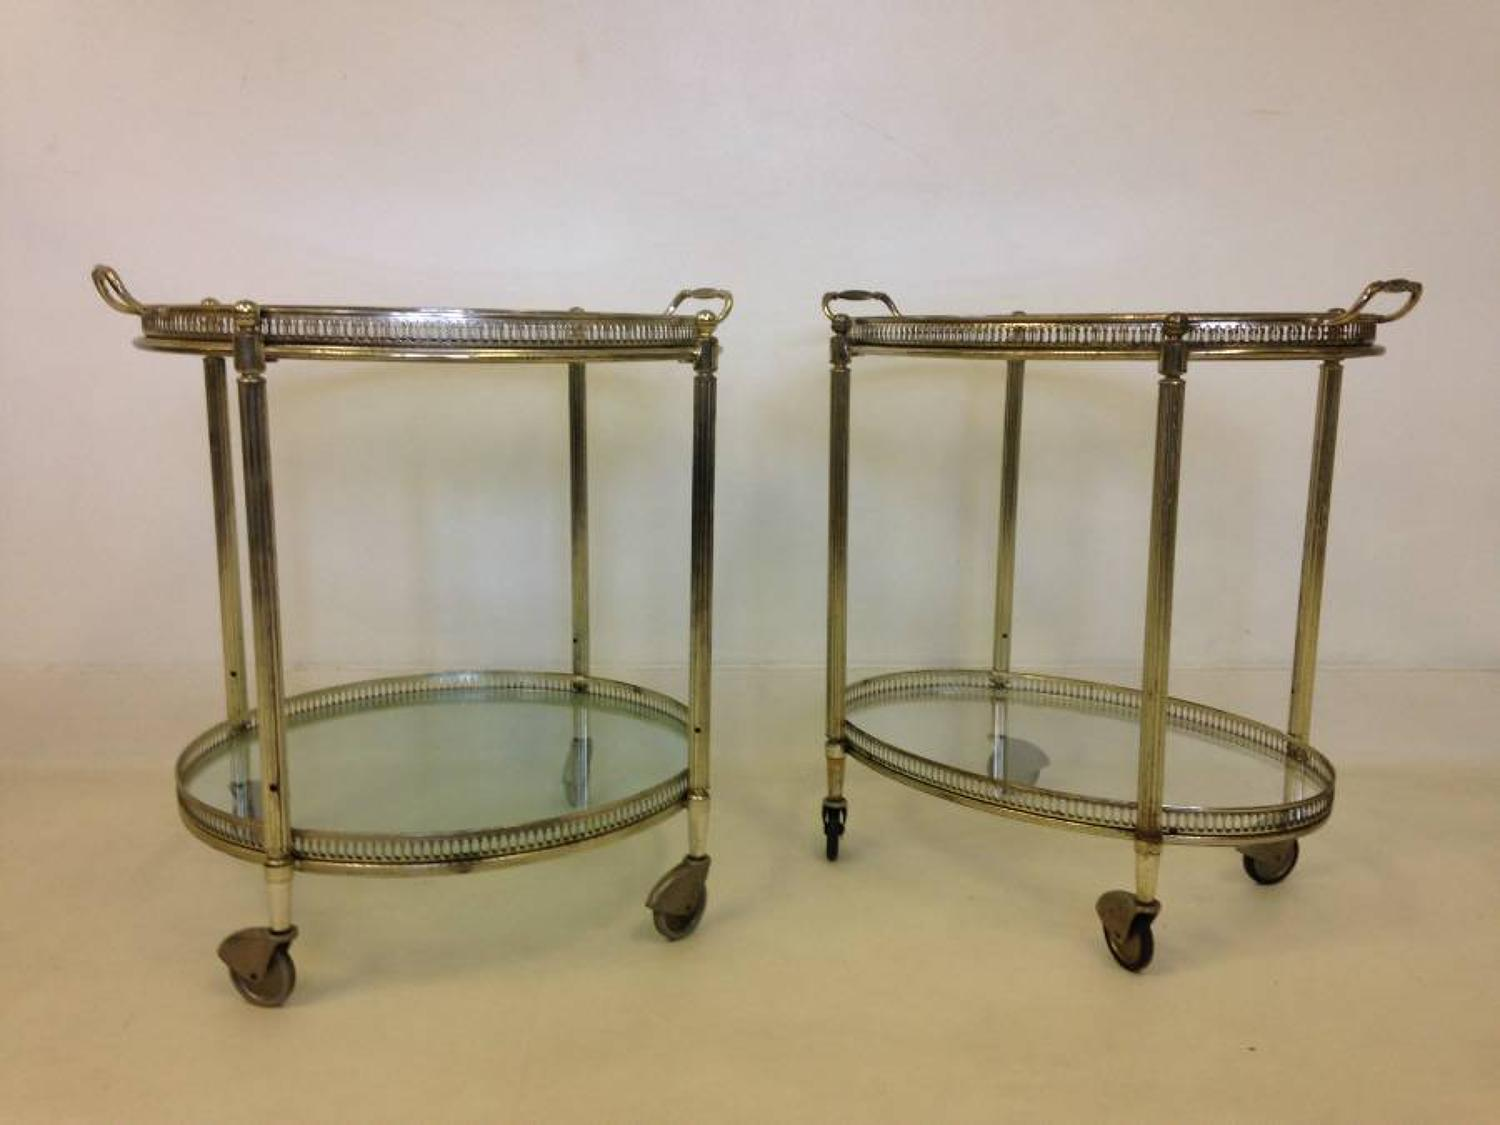 A pair of French silvered trolleys